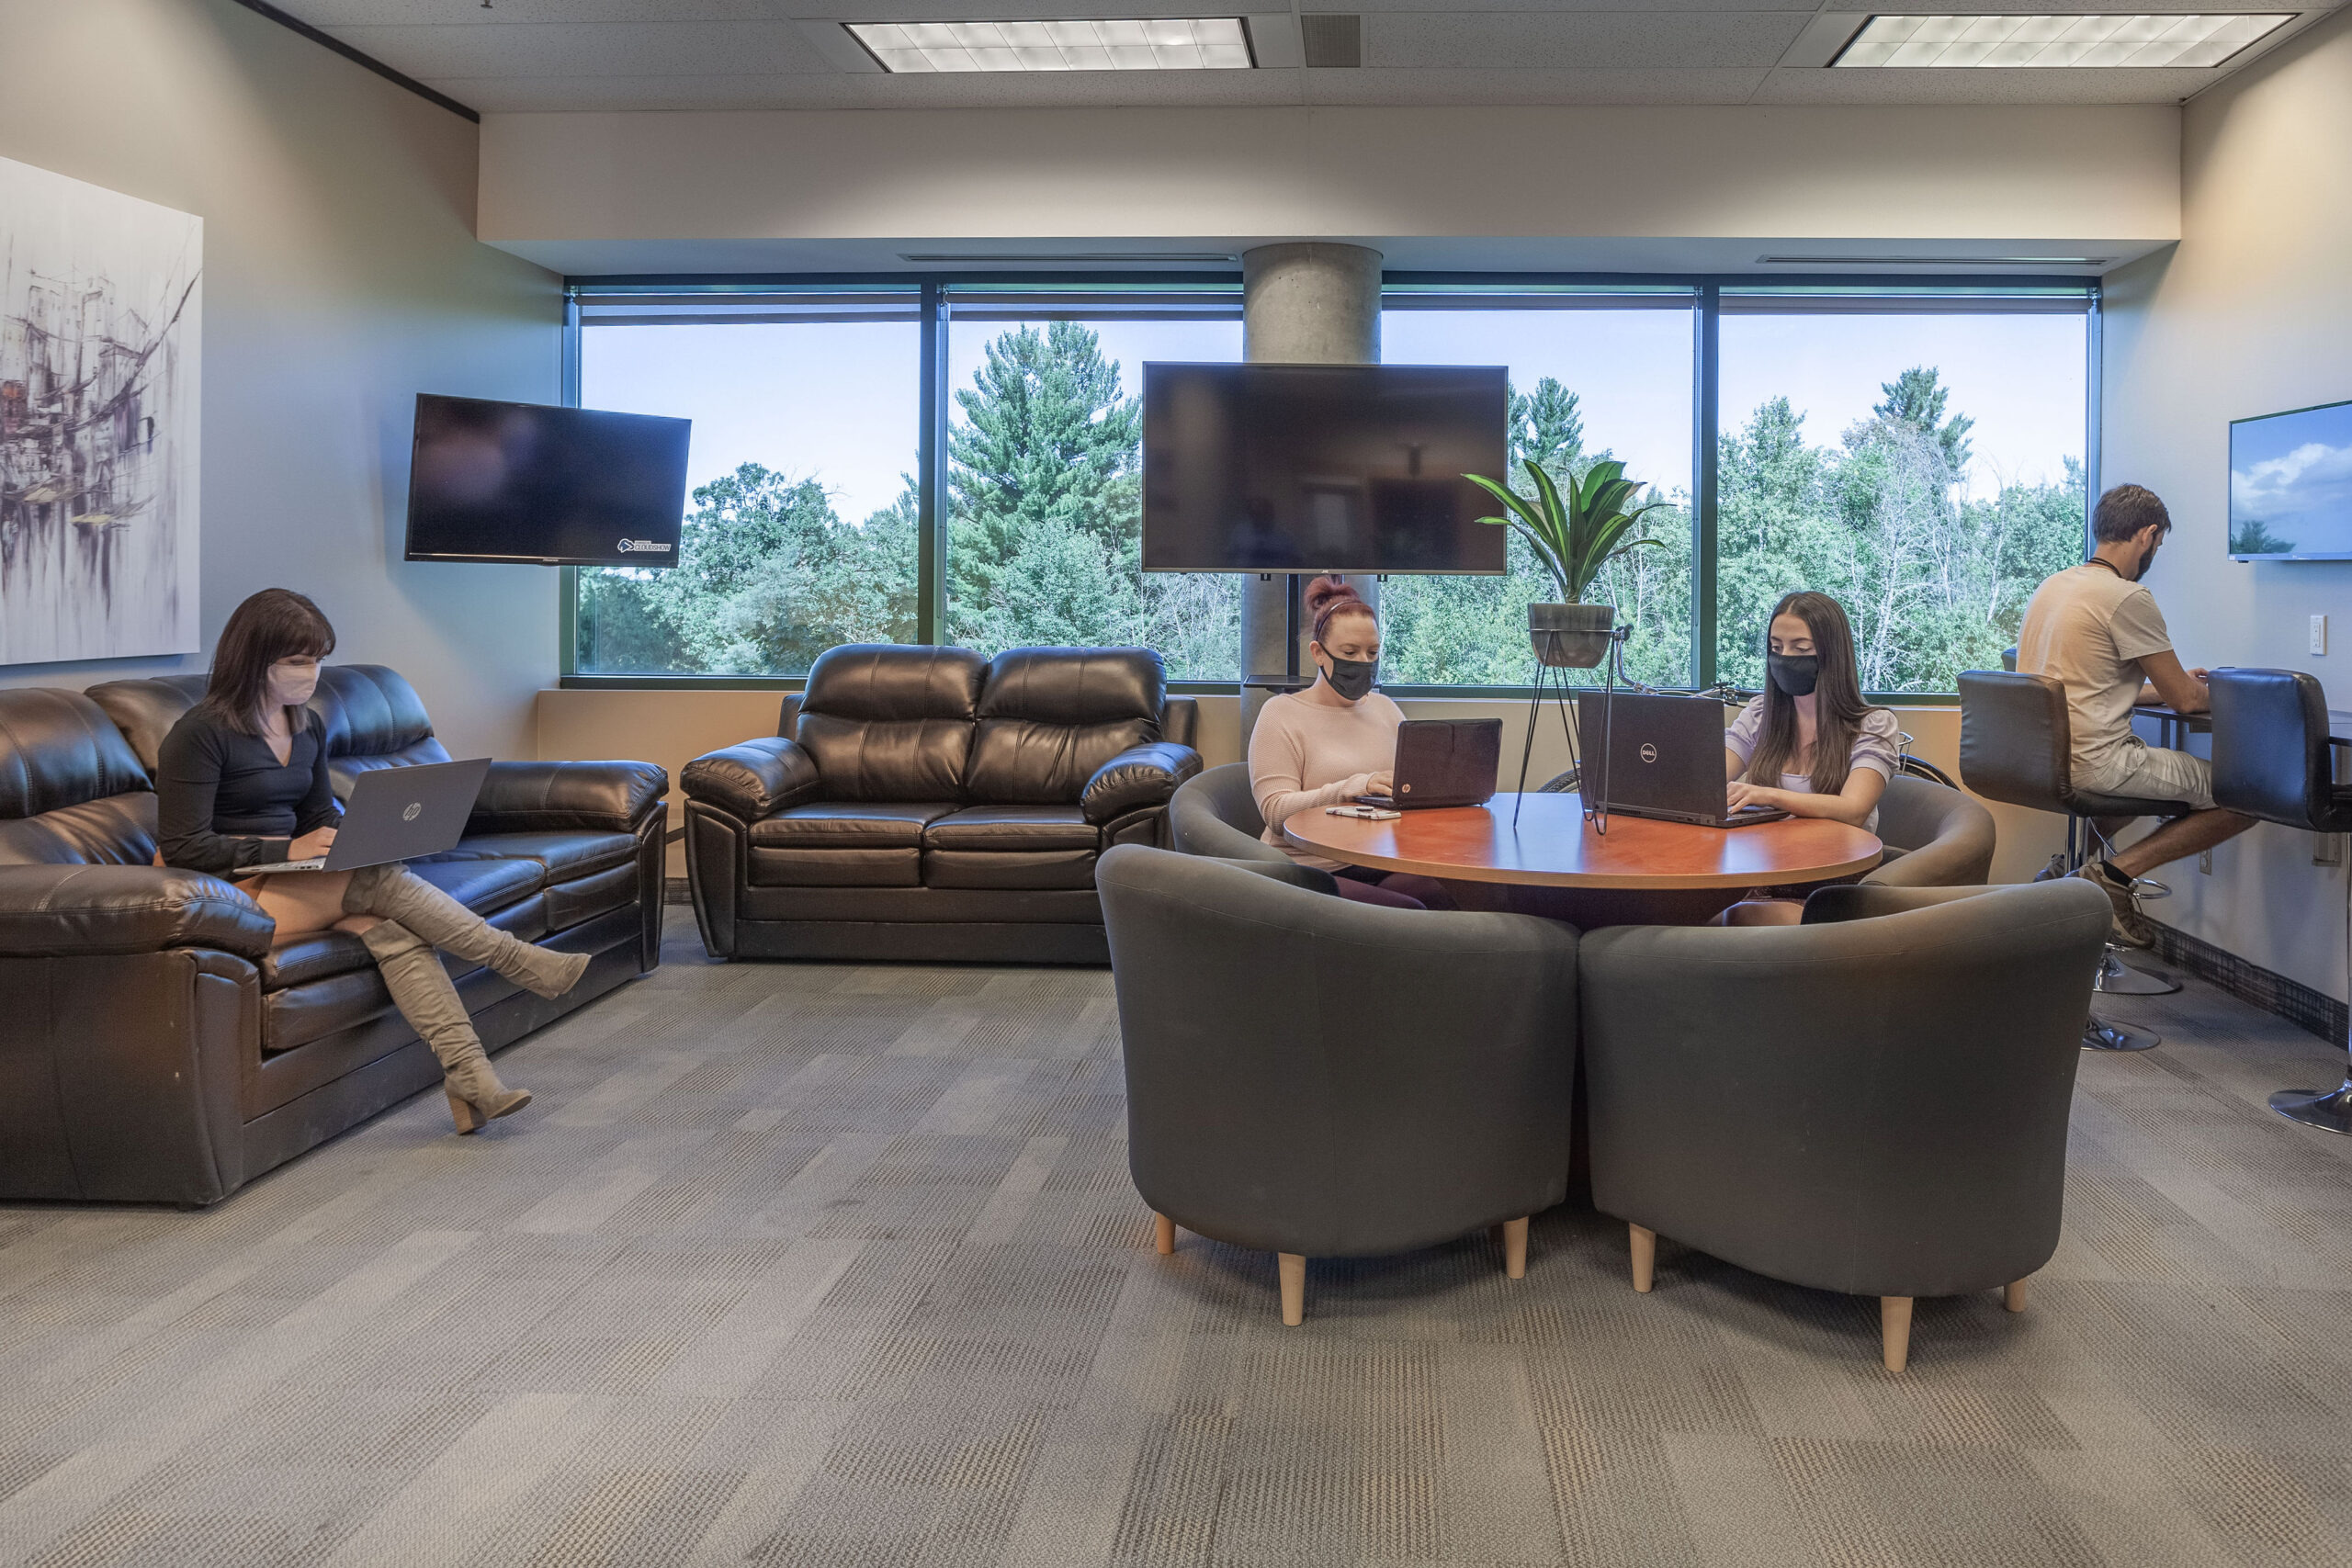 What is the difference between Virtual Services, Meeting Rooms, Co-working and Executive Offices?